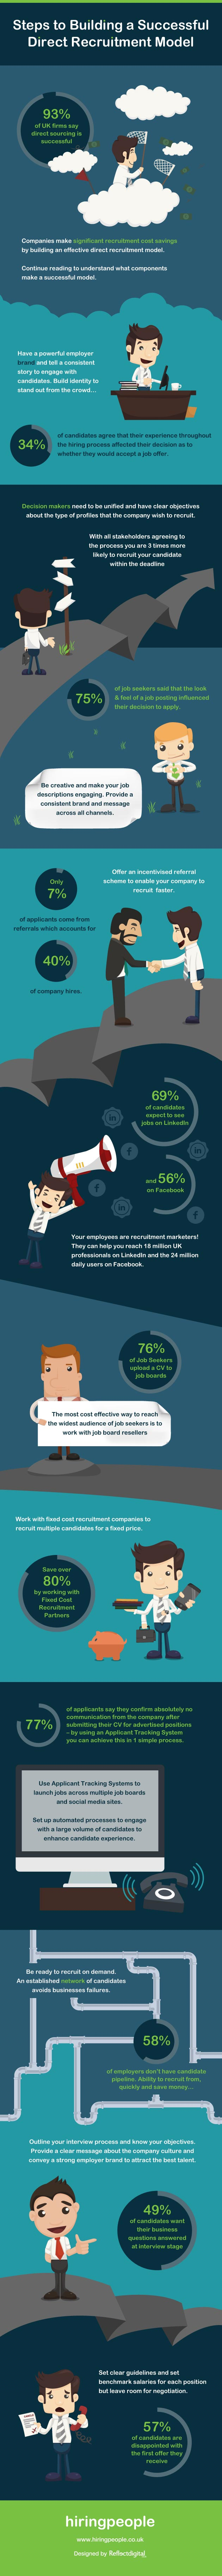 Infographic – Steps To Building a Successful Direct Recruitment Model